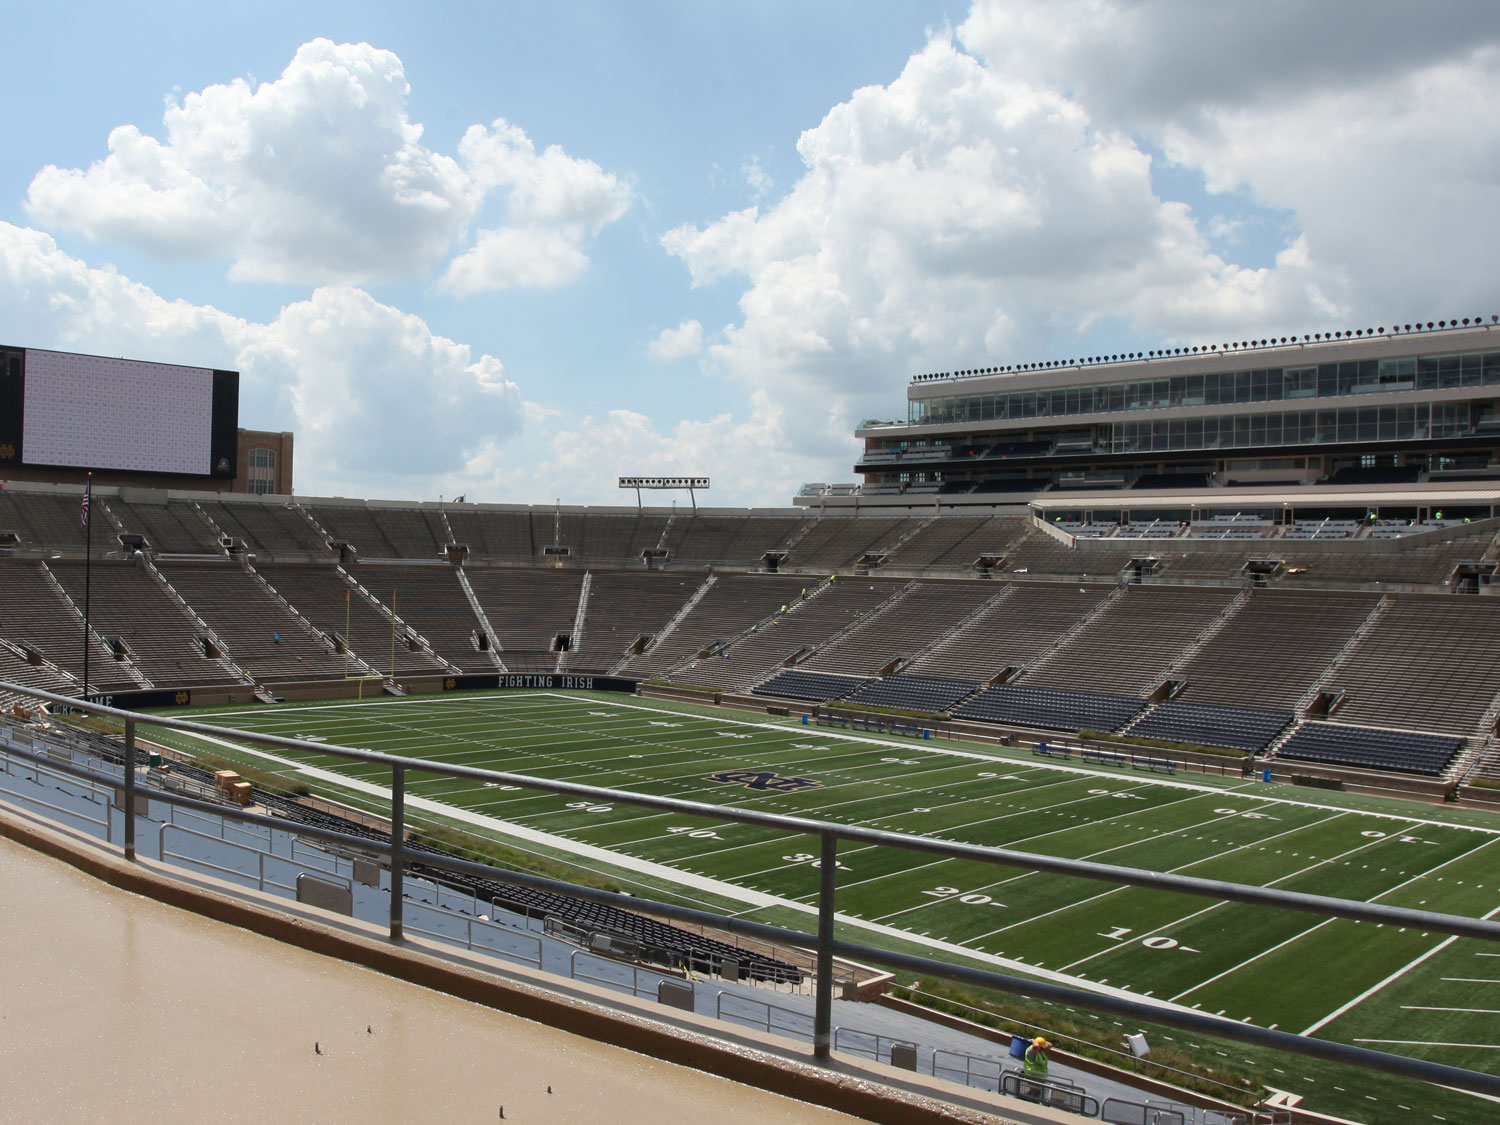 University of Notre Dame Outdoor Stadium